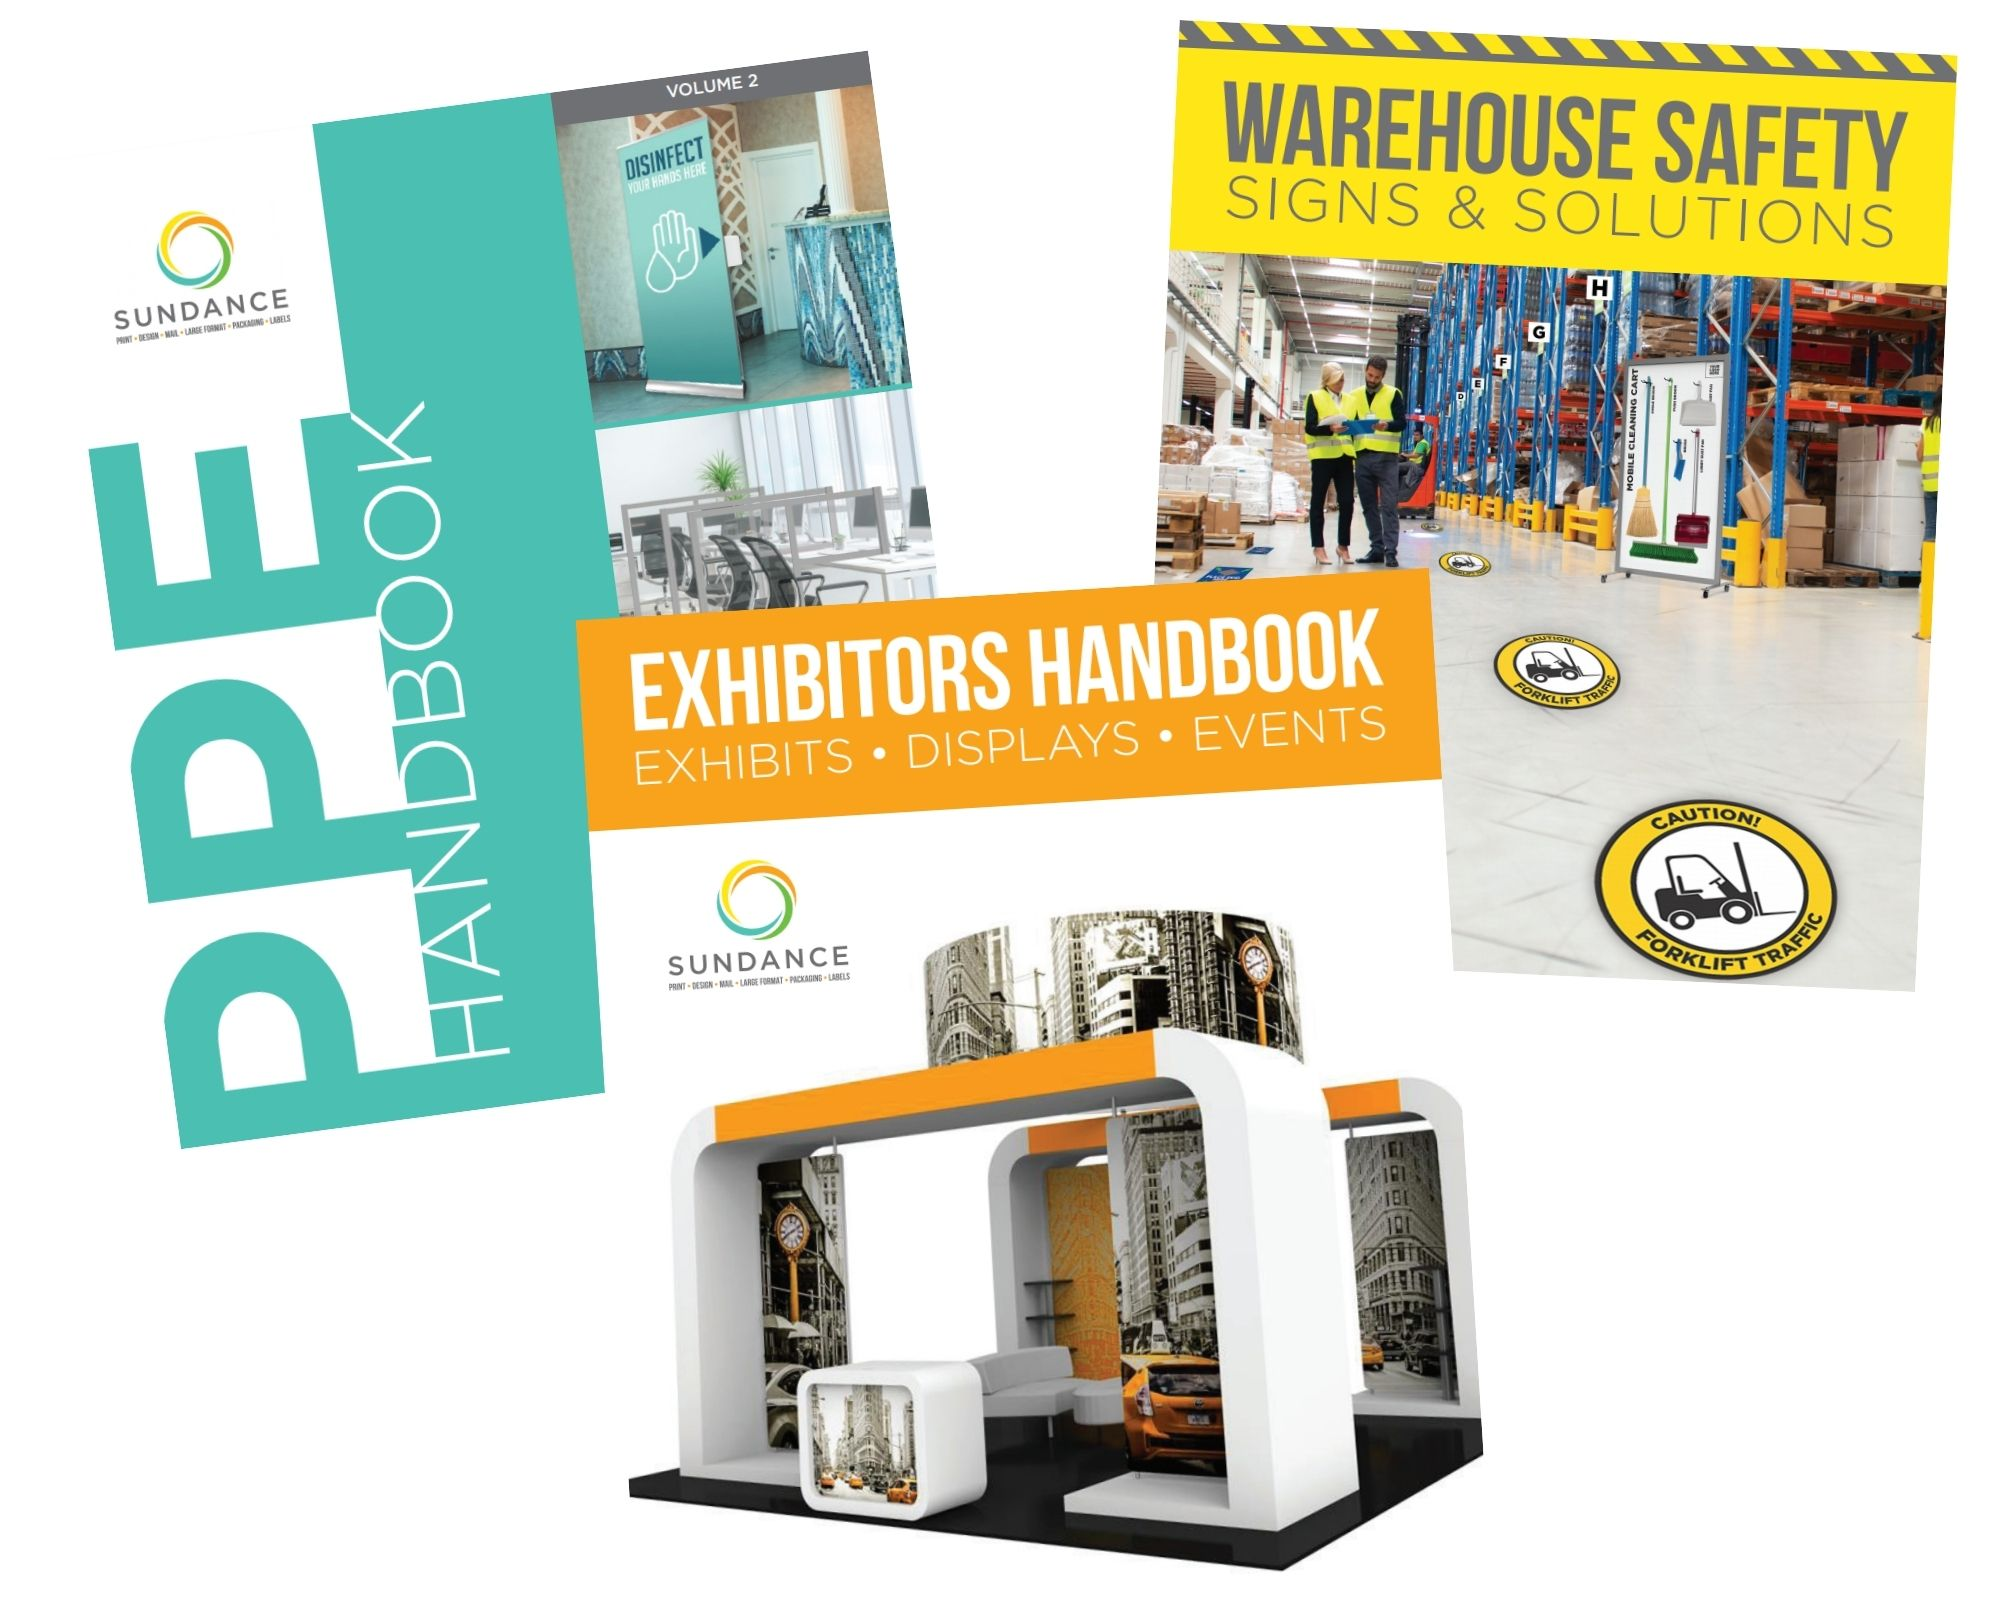 New Exhibitors, PPE, and Warehouse Safety Catalogs!